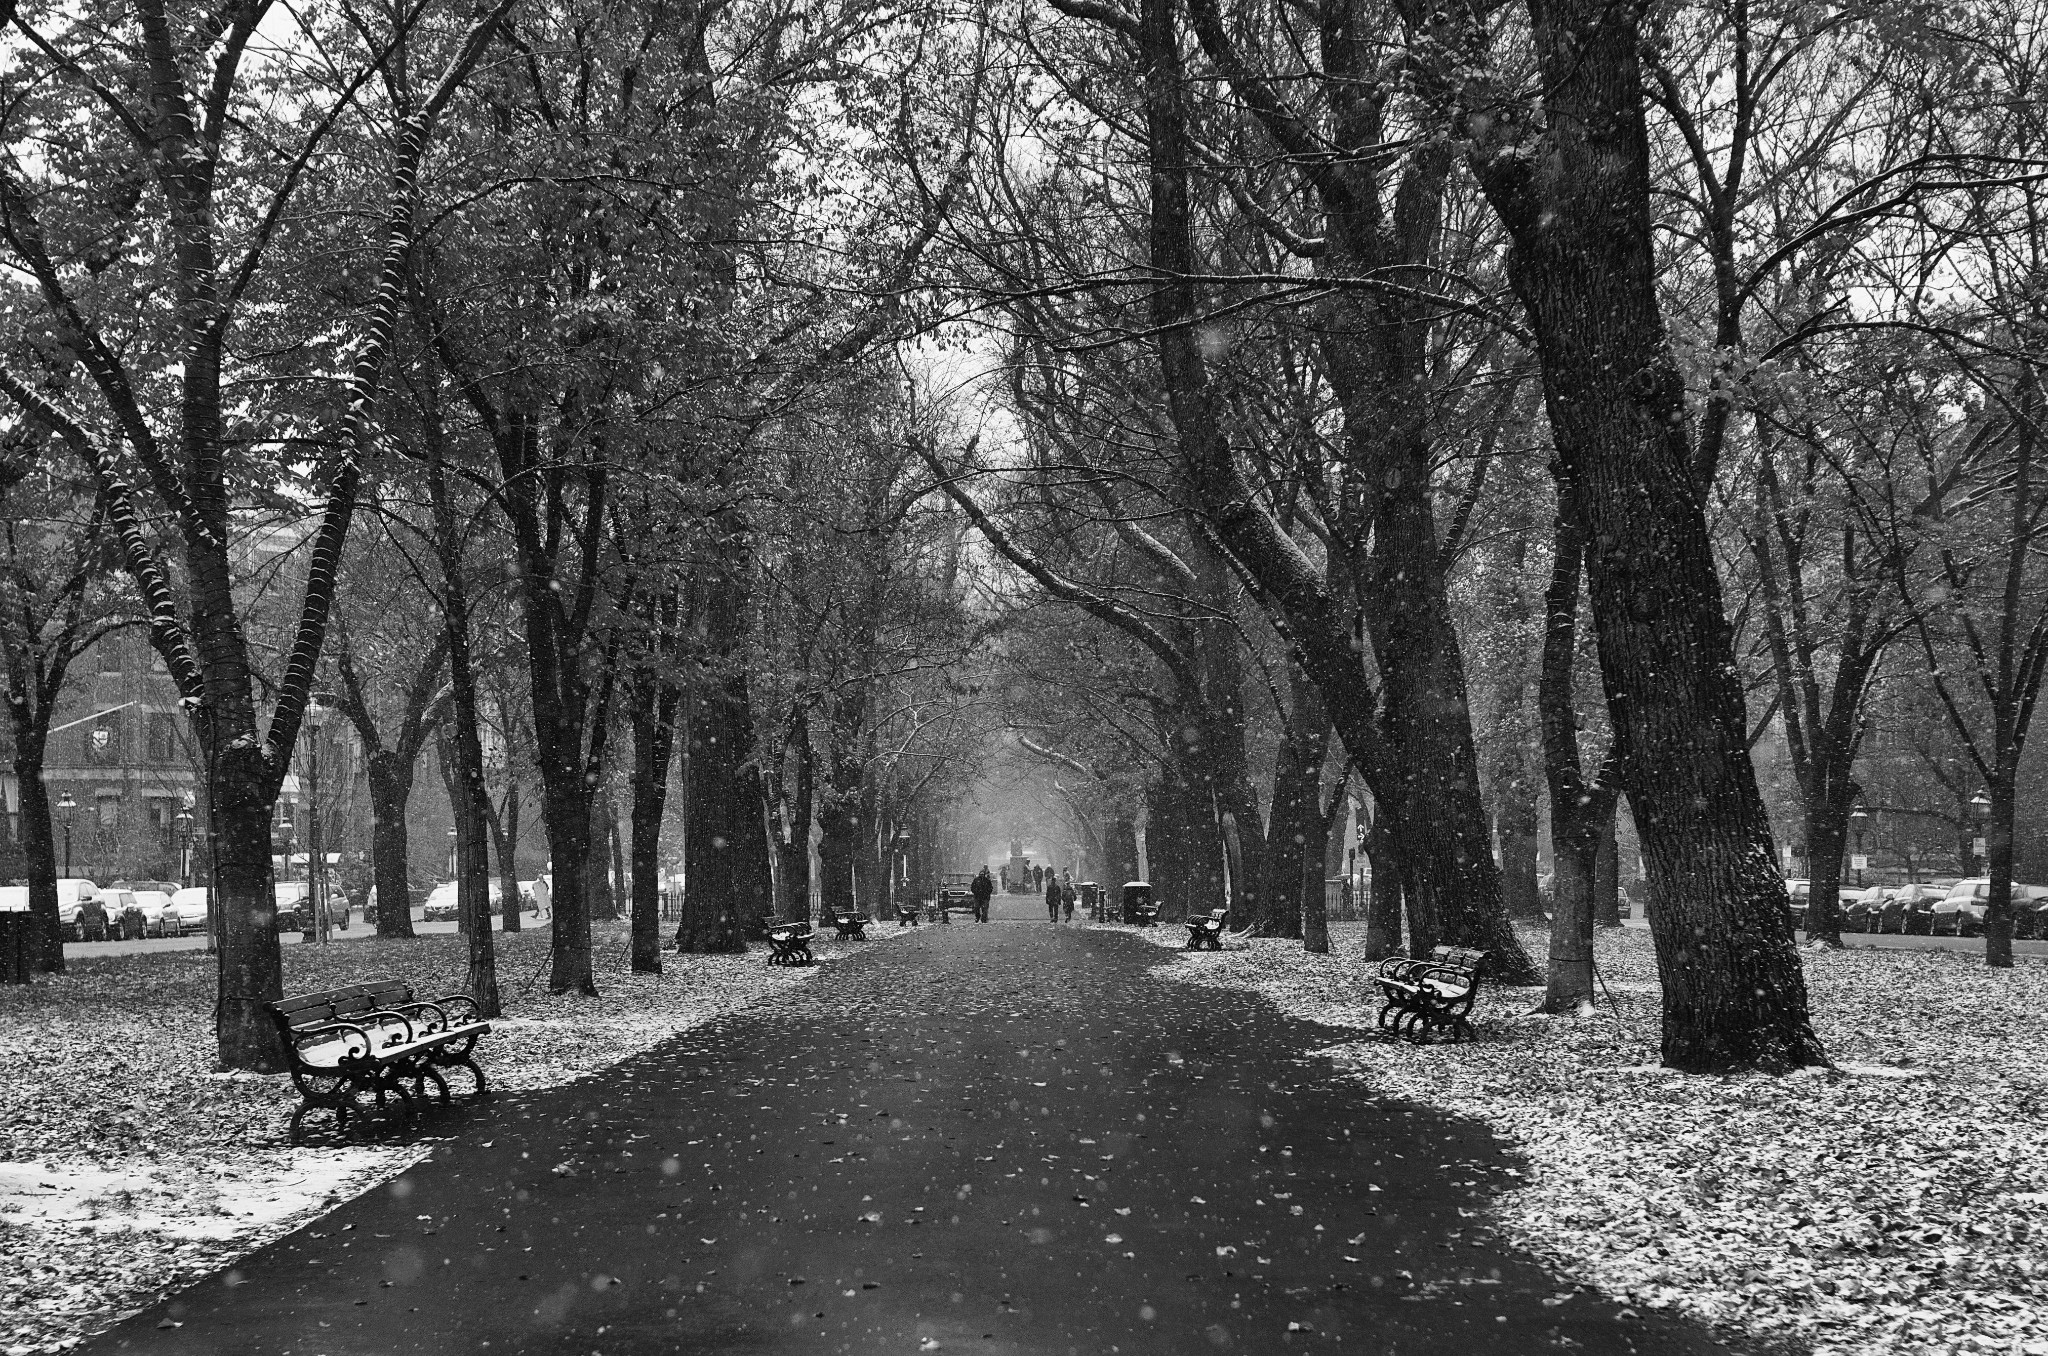 Photo: First Snow Boston, MA. 2012.  My attempt at a classic scene.  On our trip out to Boston we were treated to the first snow of the year. - I wish I had more chances to make this image again, you always learn so much the first time you shoot somewhere, and I was surprised to learn what settings looked best for this scene -- just wish I had more cracks at it.  Some info about processing, started in LR for minor lens correction, then onto Silver Efex Pro for b/w conversion, then into Photoshop to remove some elements that did not belong (a road cone on the left side), and finally into OnOne perfect effects for sharpening.  Final cropping in LR after all processing was complete.